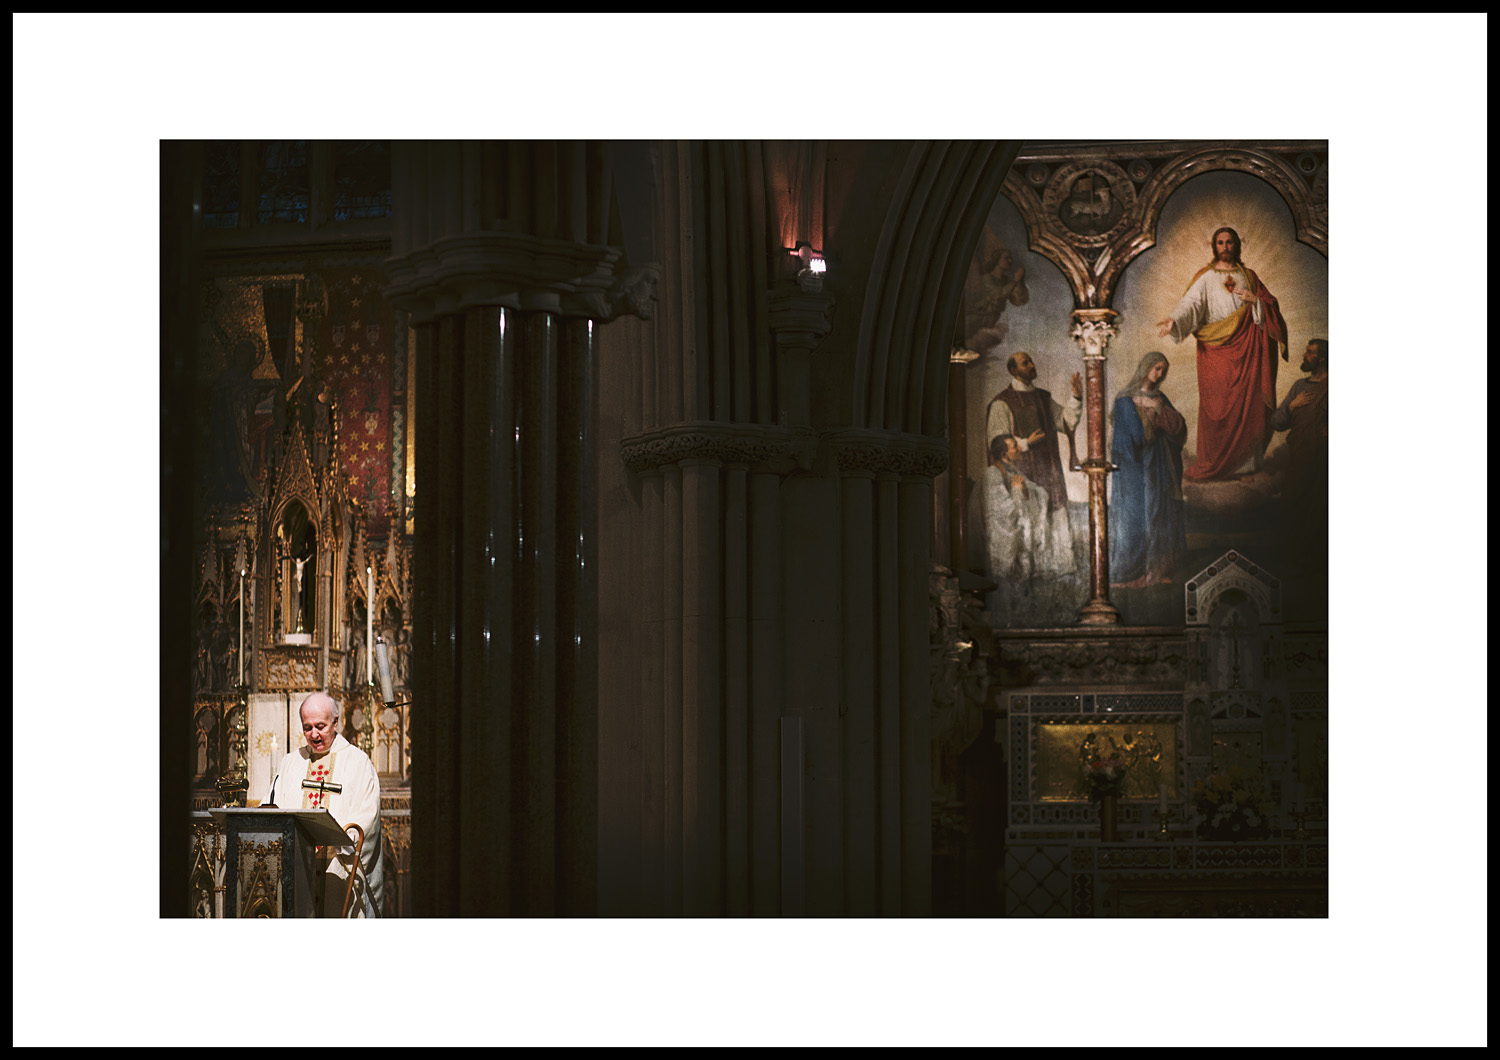 The Priest addresses the congregation ahead of the bride's arrival... (85mm lens, 60th/F4, 2500asa)